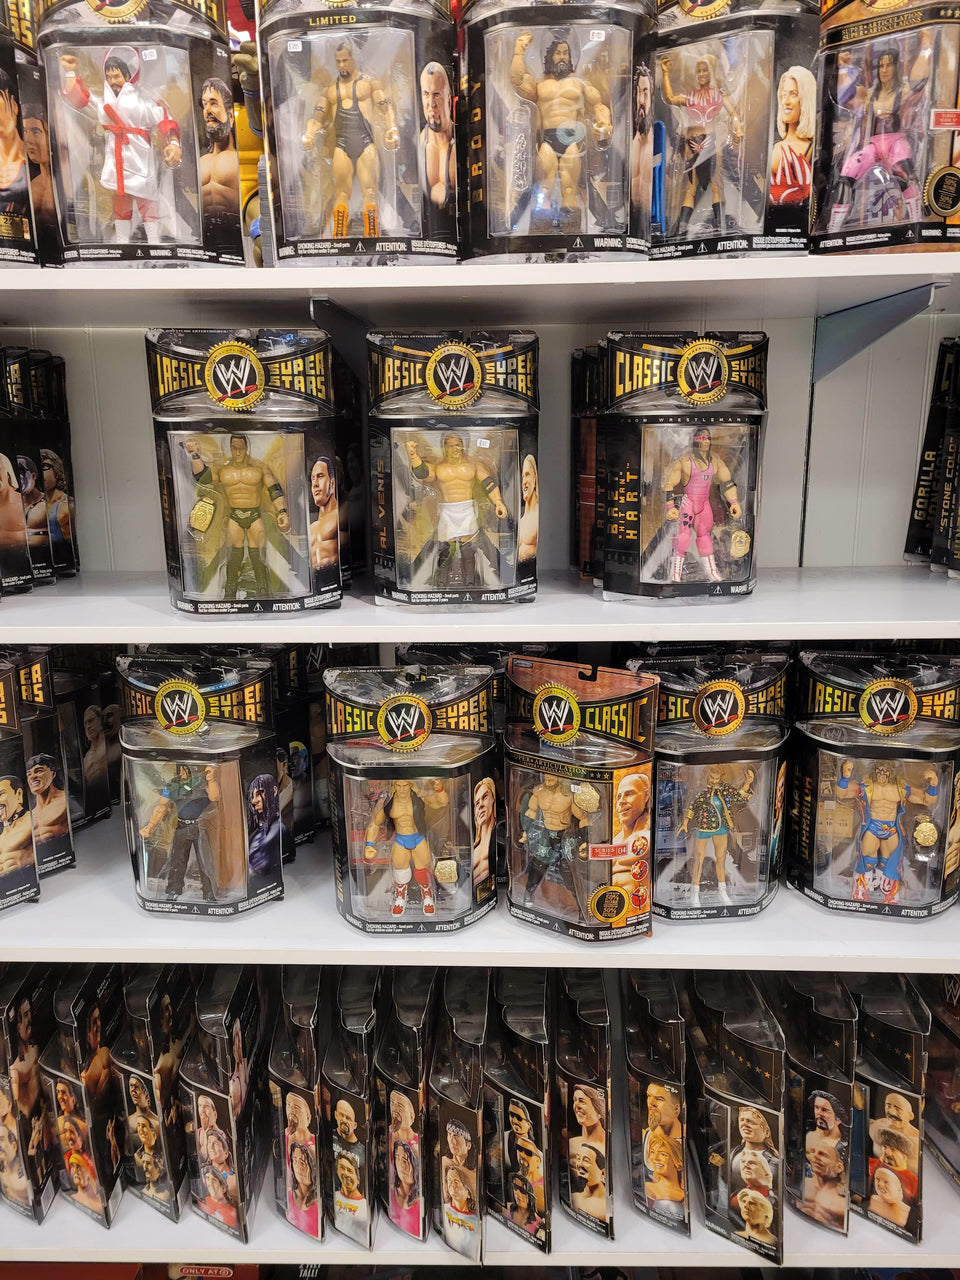 WWE Retro Figures